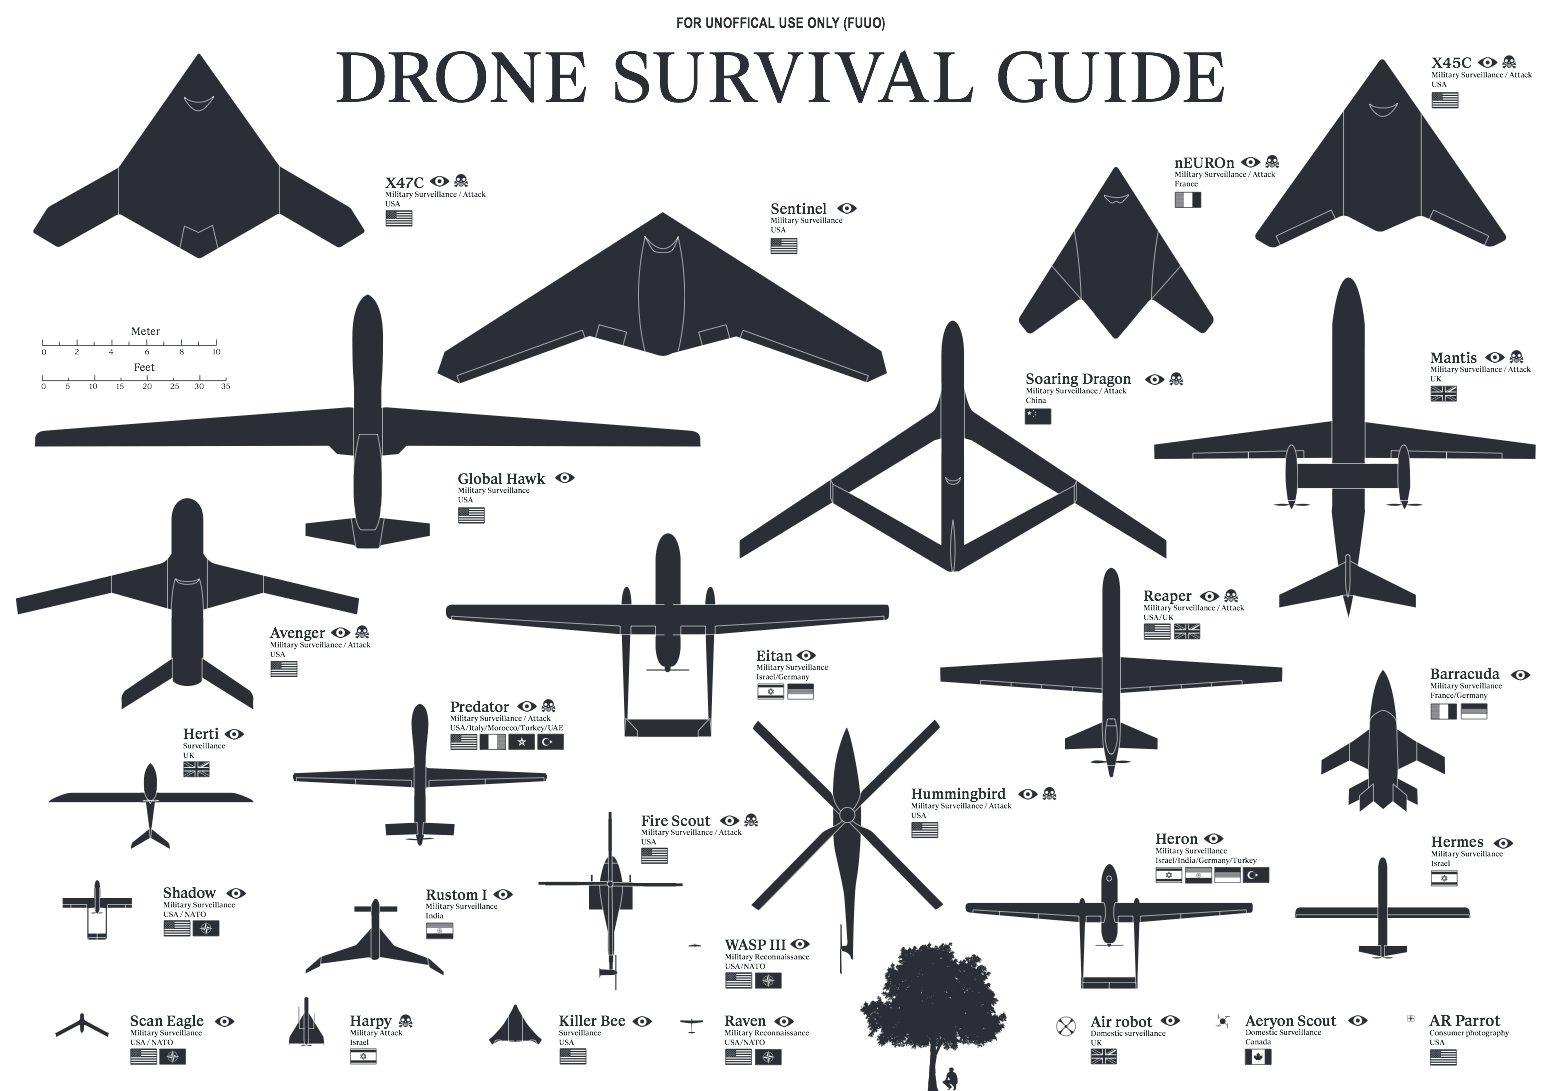 Visual of The Drone Survival Guide